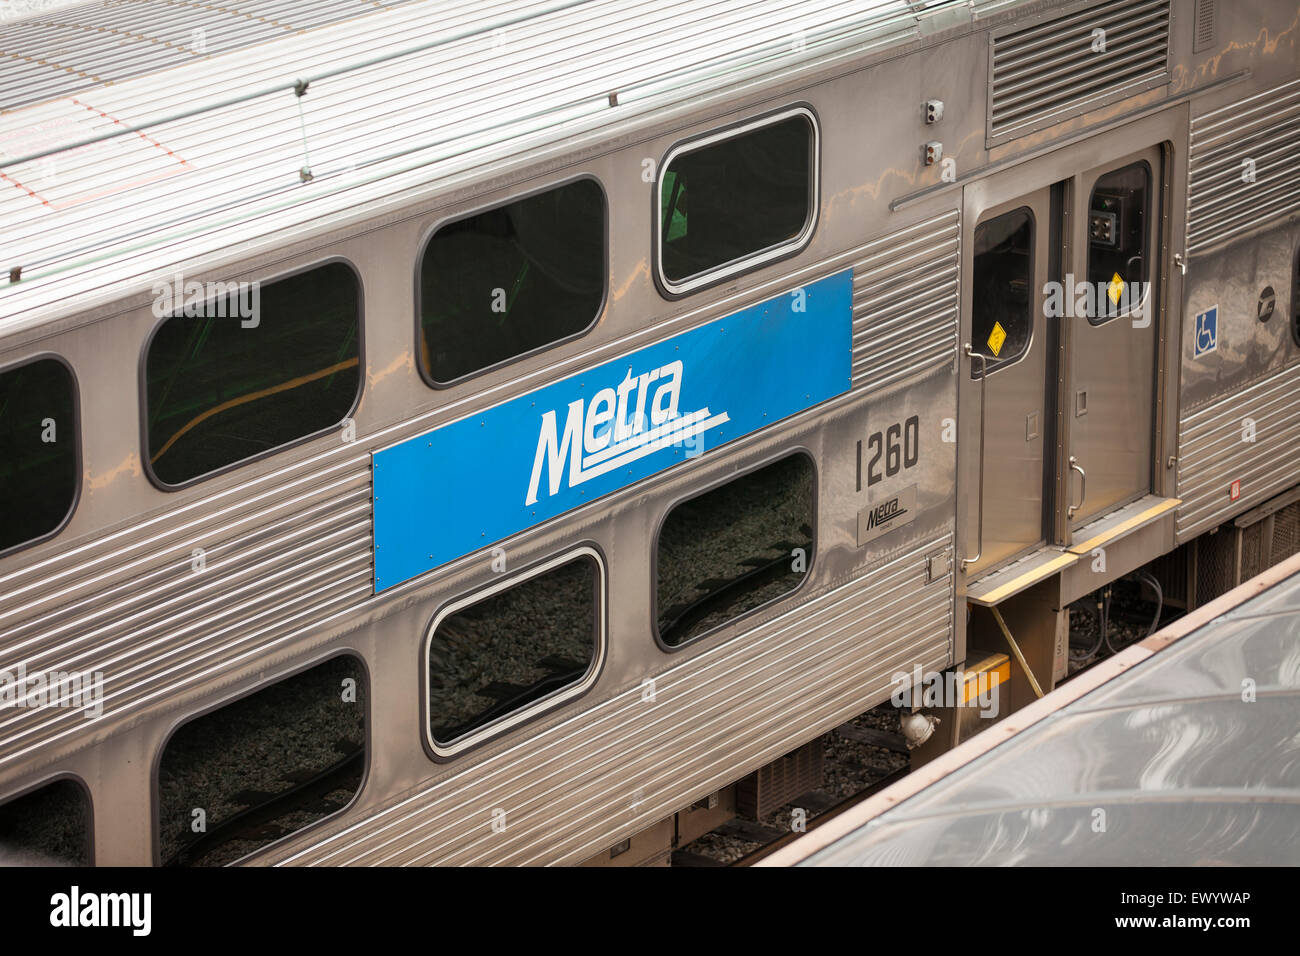 A Metra train car with a Metra sign sits in a station in Chicago, Illinois. - Stock Image